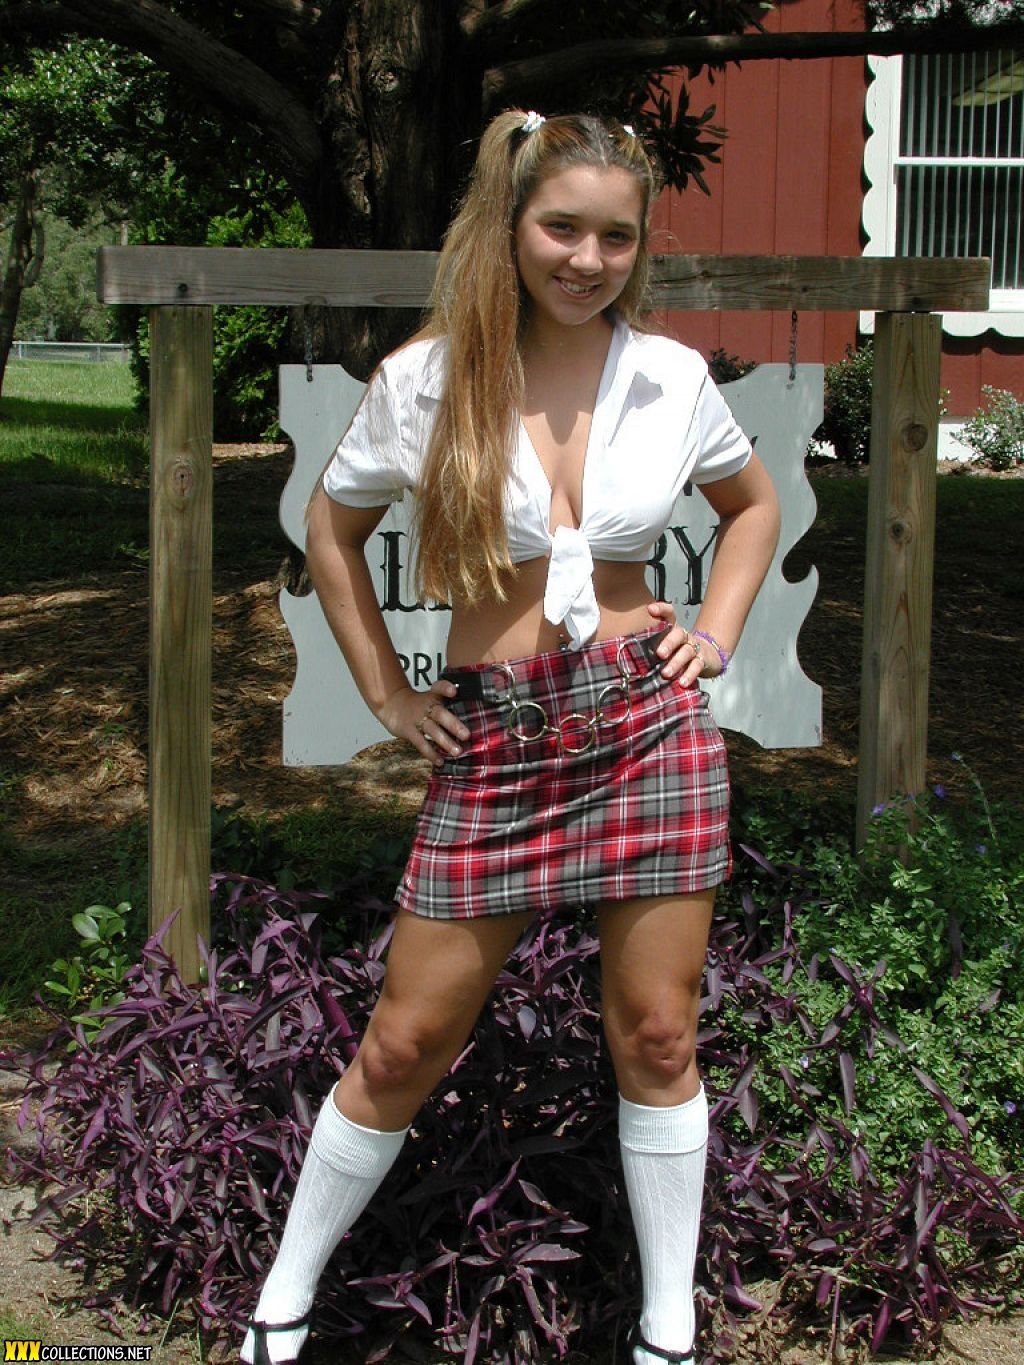 christina model special picture sets pack download